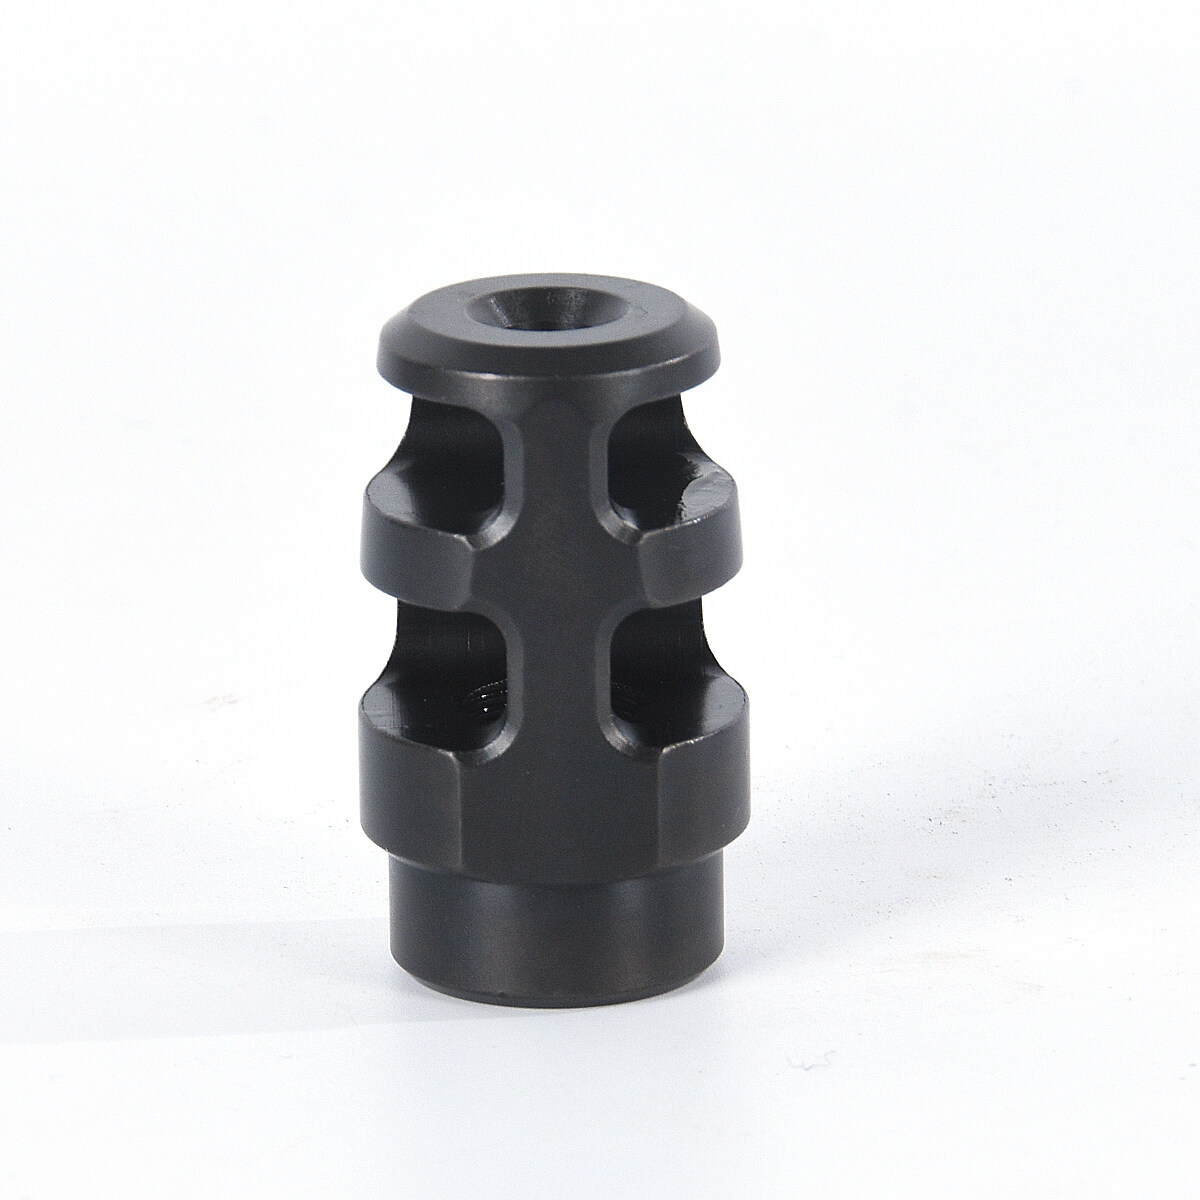 223 Recoil Compensator 5.56 Muzzle 1//2-28 TPI Heat Treated Steel w// Washer Nut